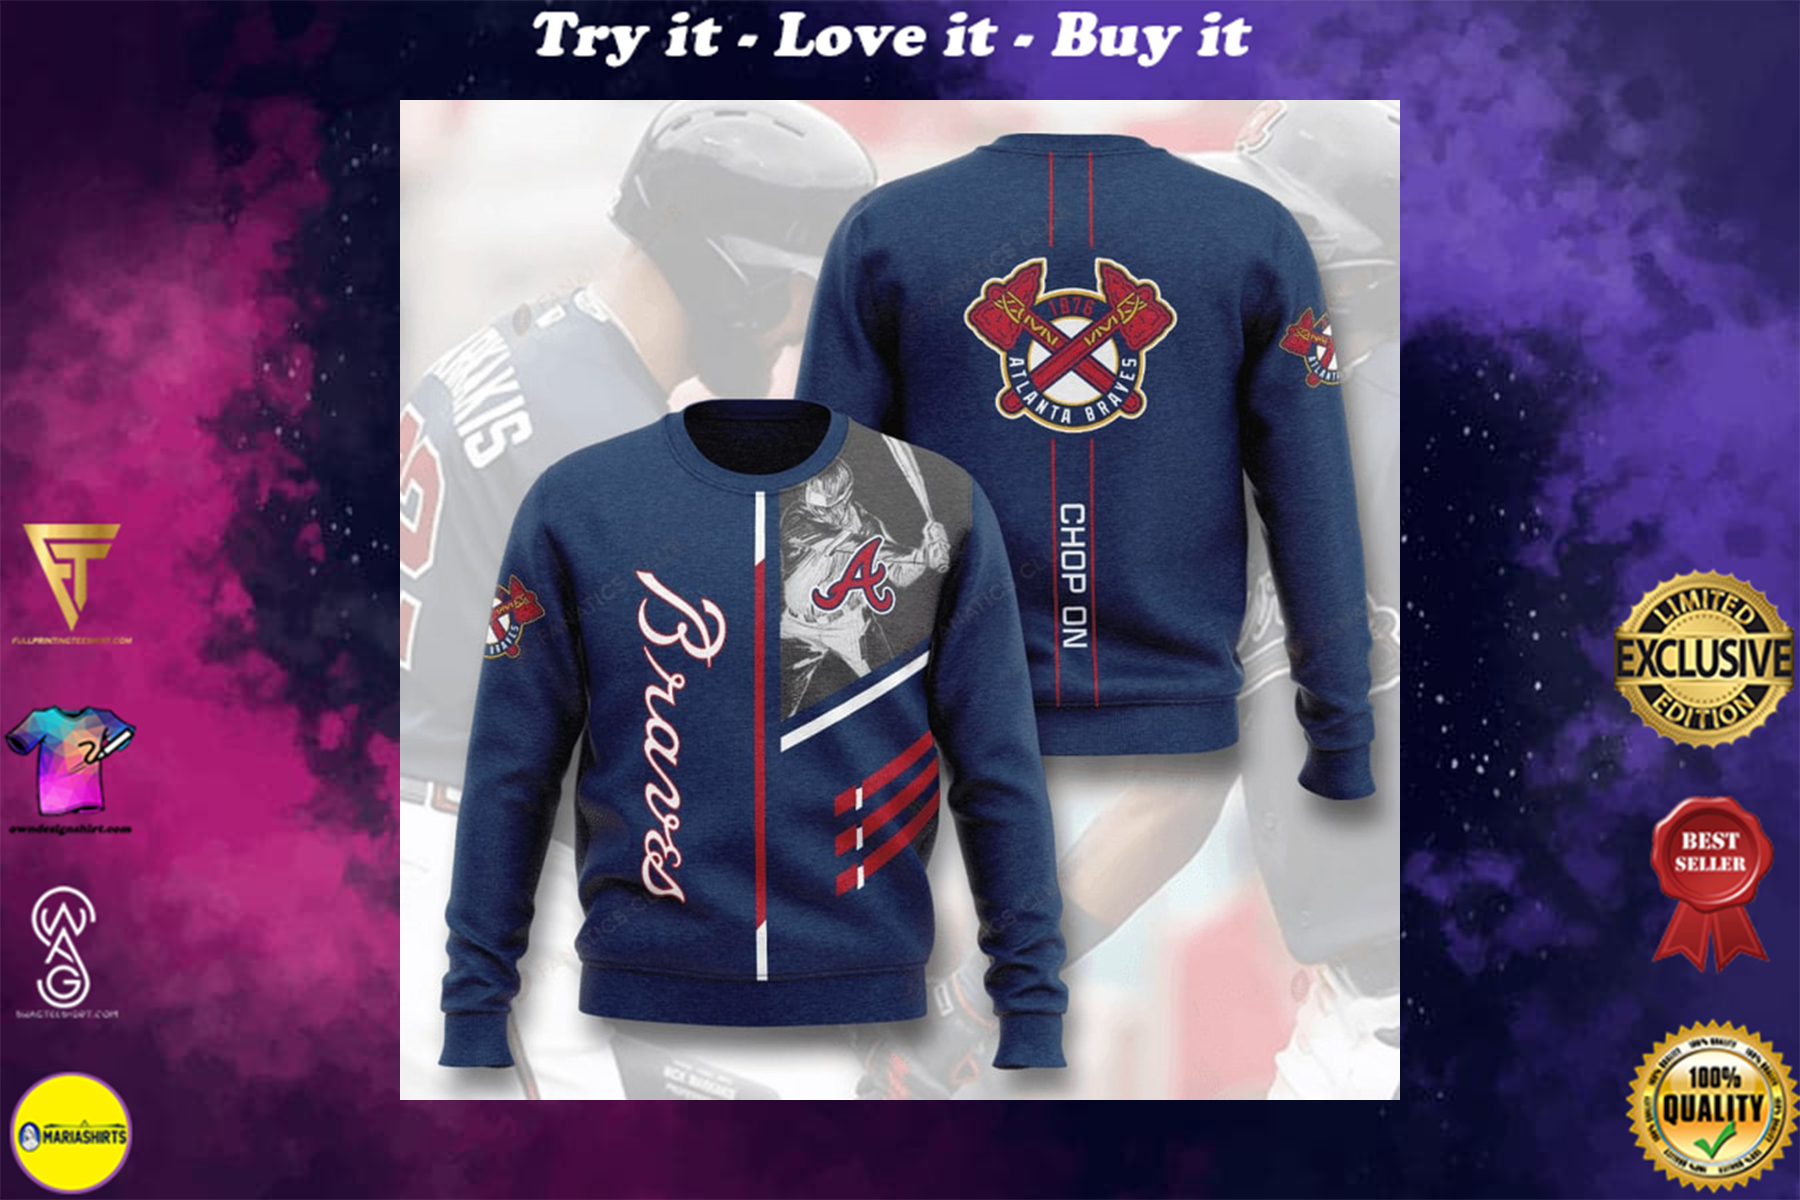 [special edition] major league baseball atlanta braves chop on full printing ugly sweater - maria